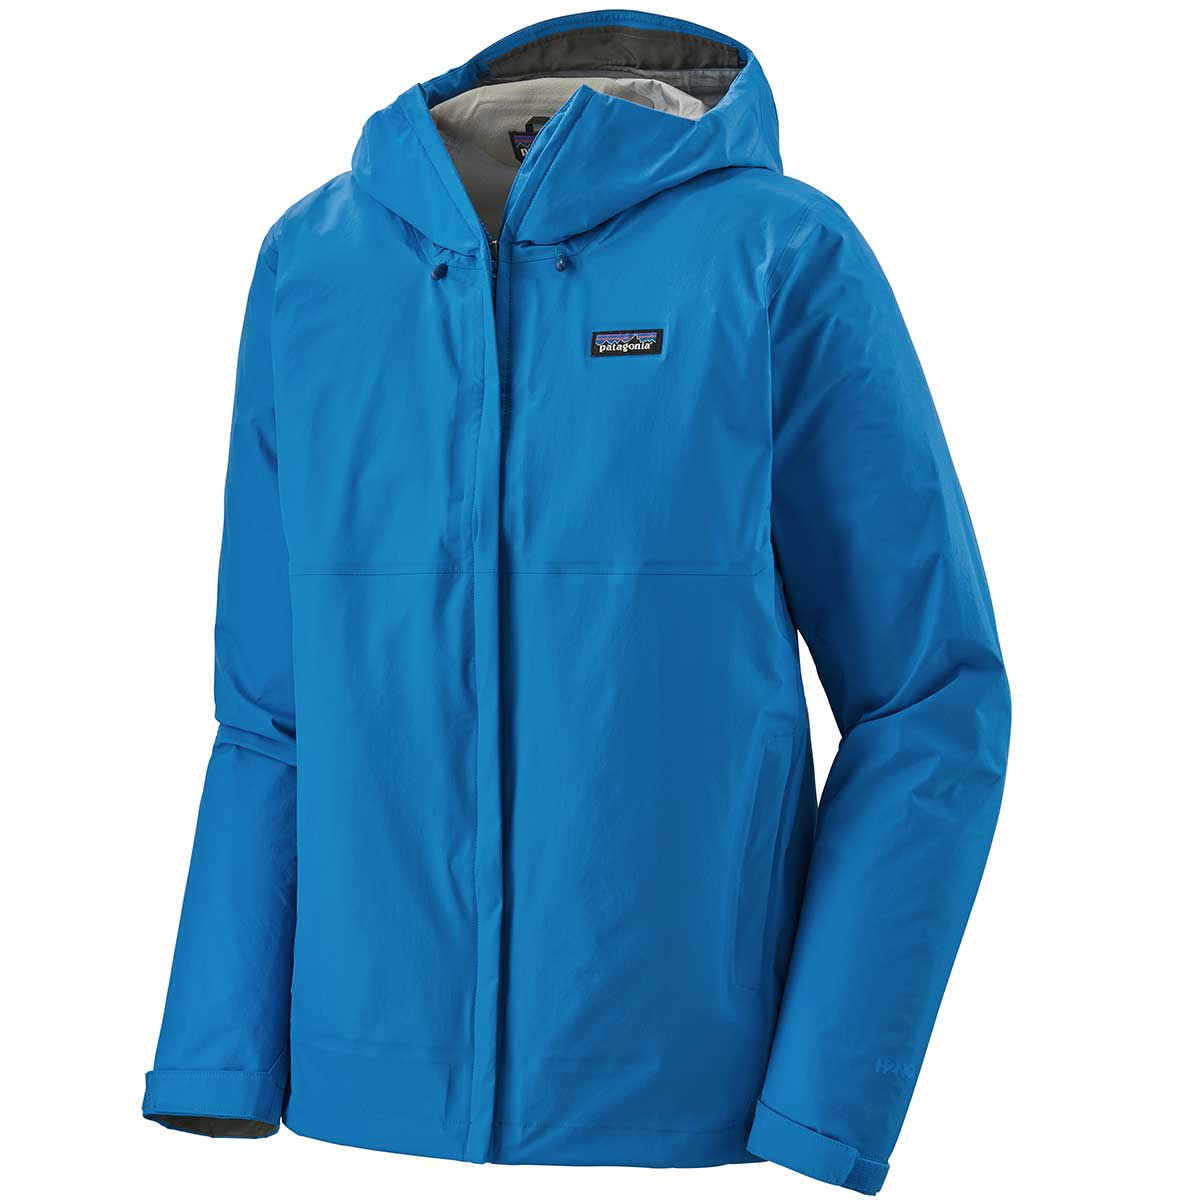 Patagonia men's Torrentshell 3L Jacket in Andes Blue main view